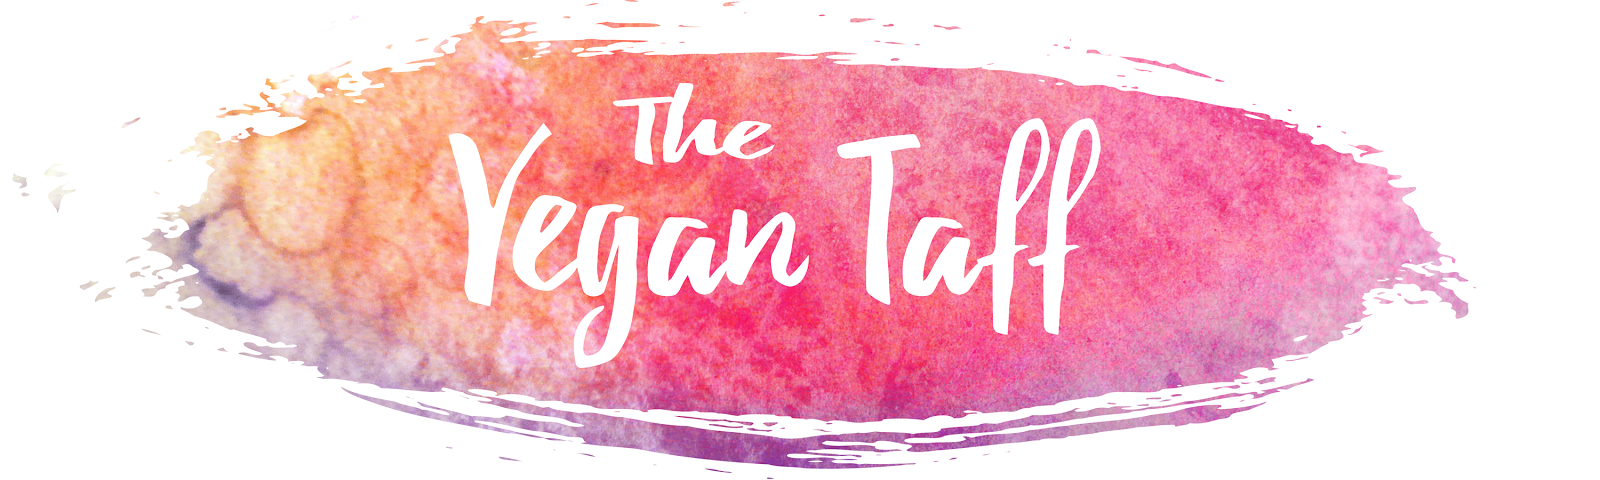 The Vegan Taff